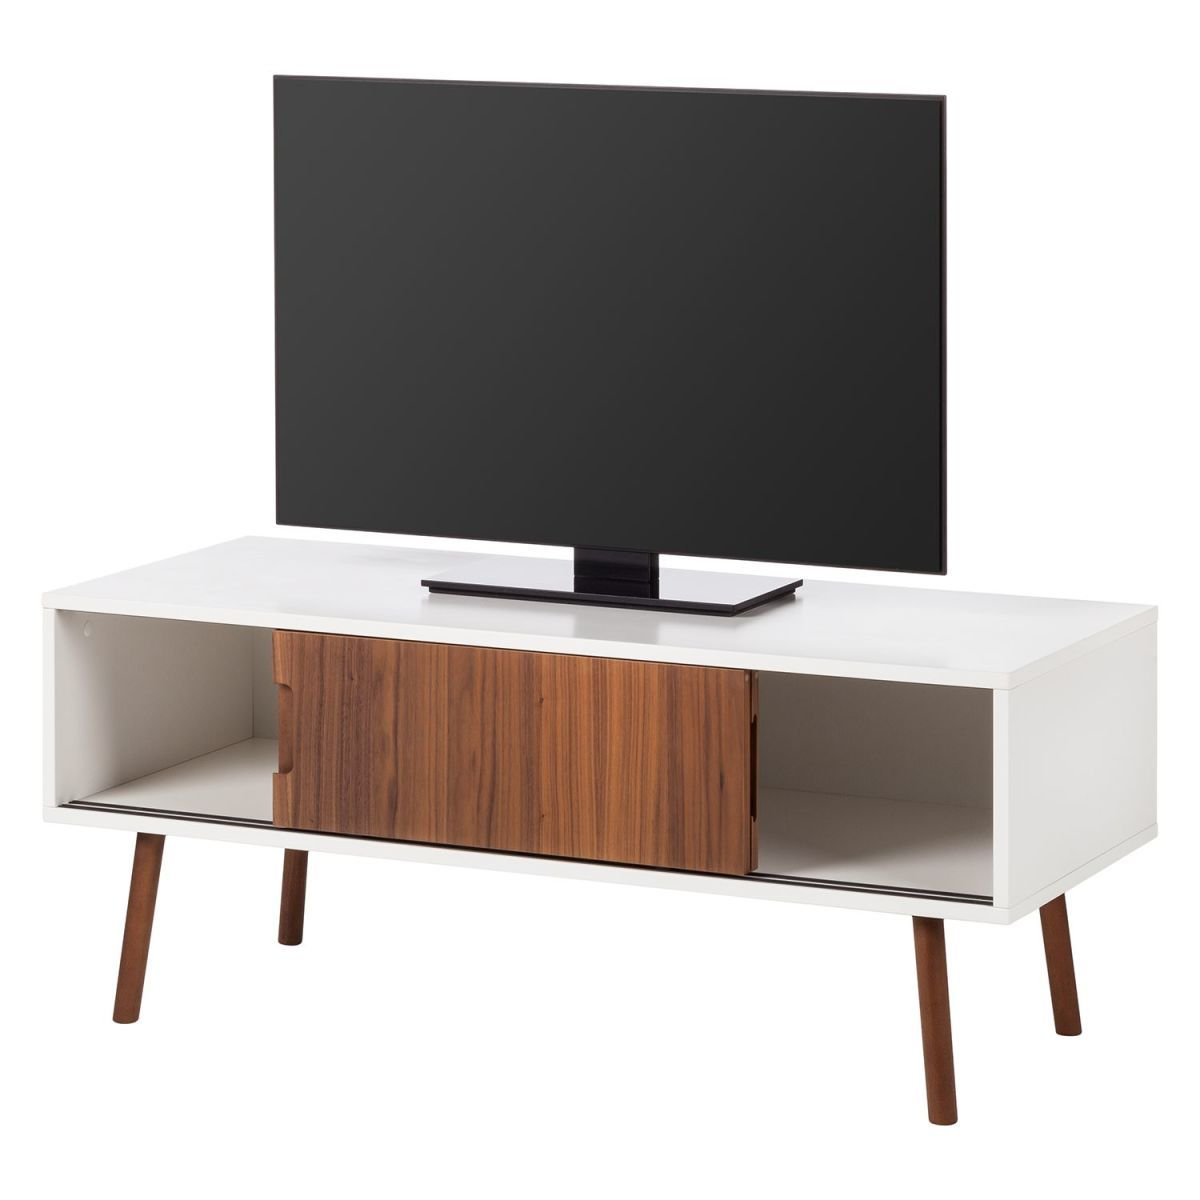 tv lowboard verwood ii wei nussbaum wohnzimmer tv hifi m bel tv lowboards braun. Black Bedroom Furniture Sets. Home Design Ideas